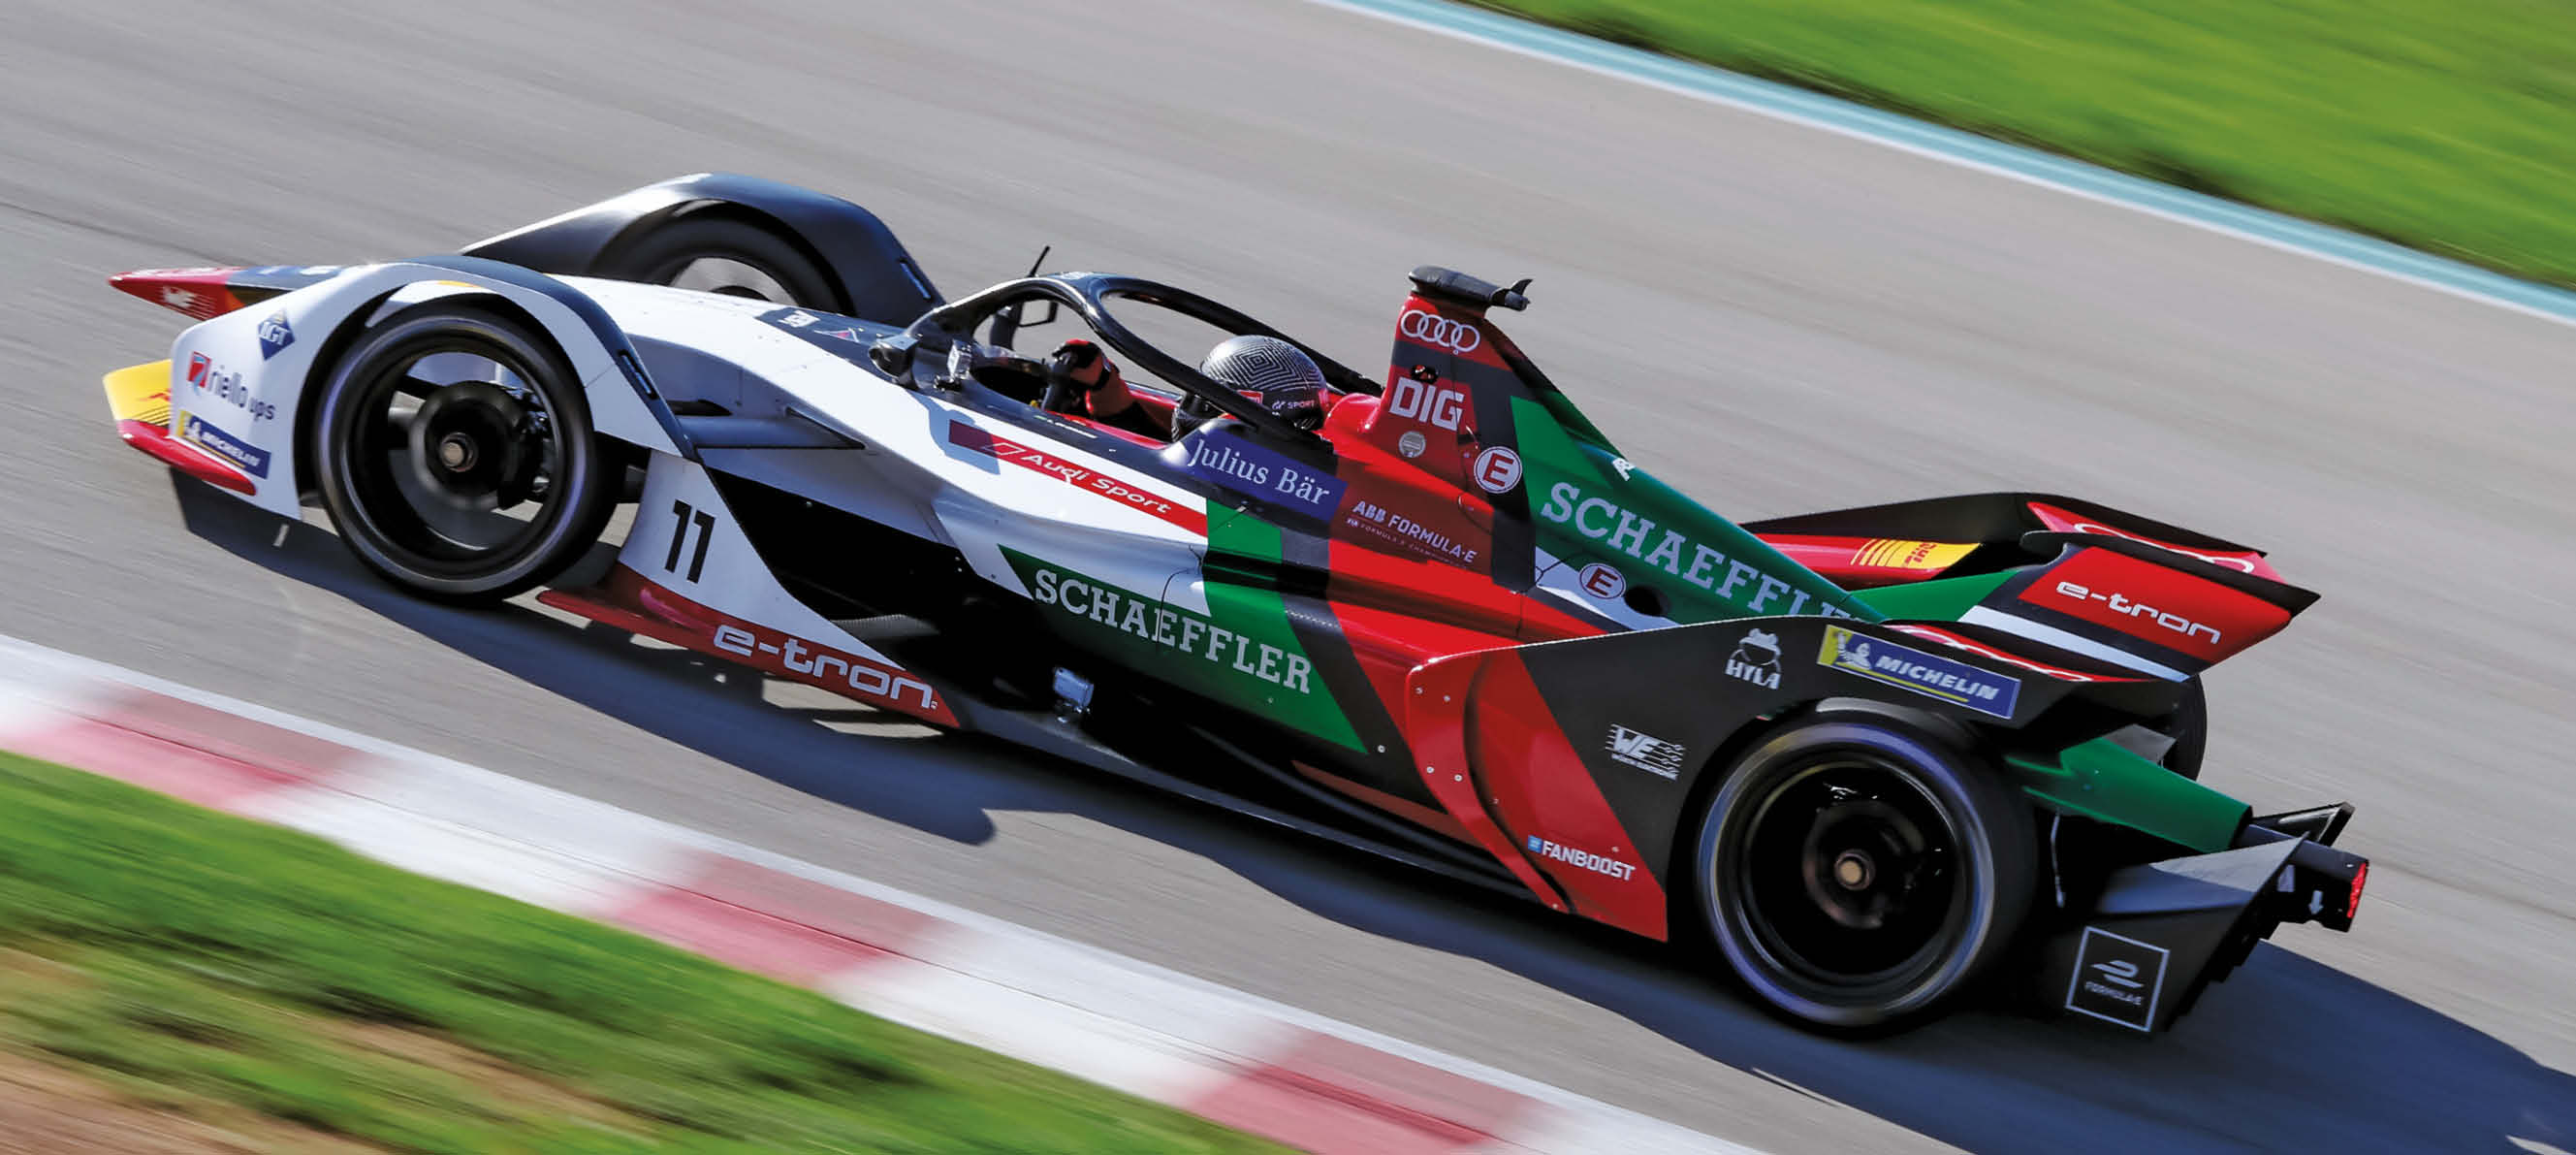 The Gen-2 Formula E racer is styled much more adventurously than the car it supersedes